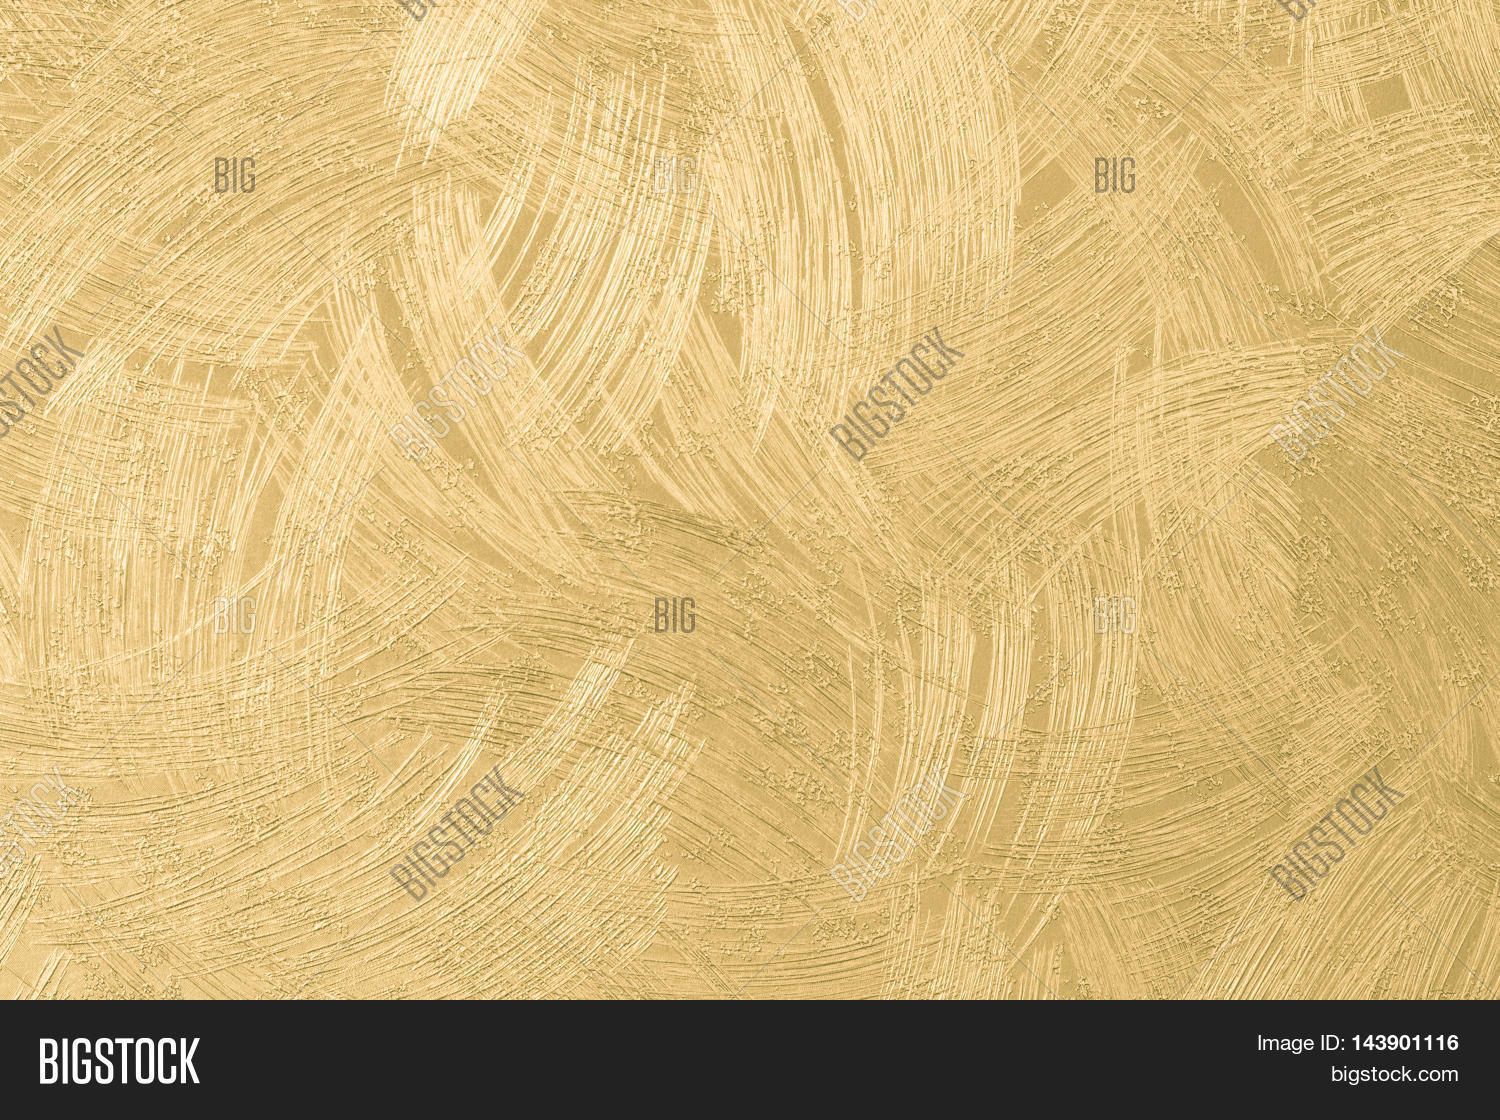 Texture Background Image & Photo (Free Trial) | Bigstock